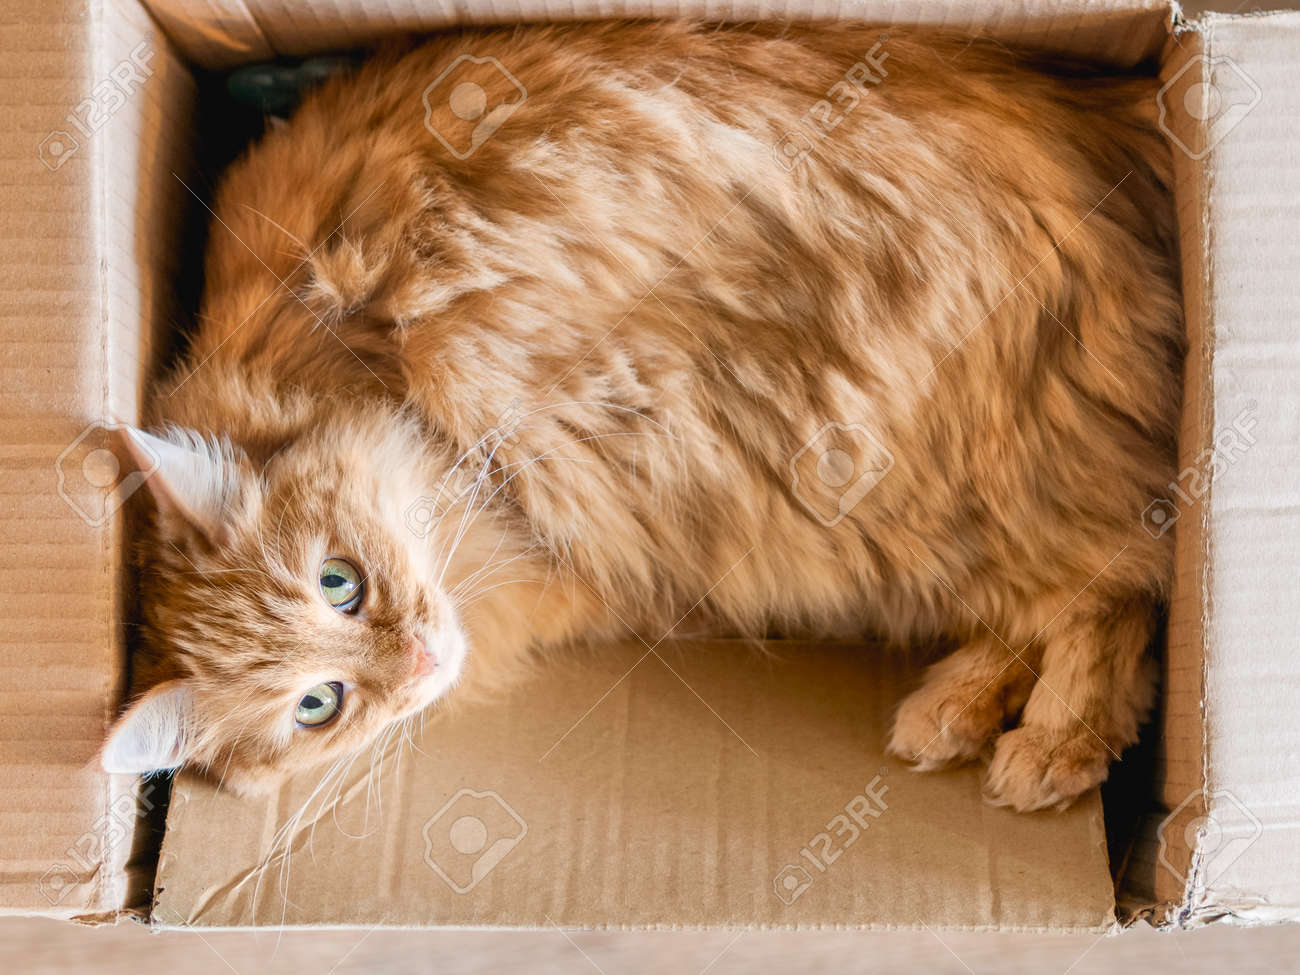 Cute ginger cat curled up in carton box. Fluffy pet is staring in camera. Little ball of fur sleeps anywhere. Top view. - 173429938